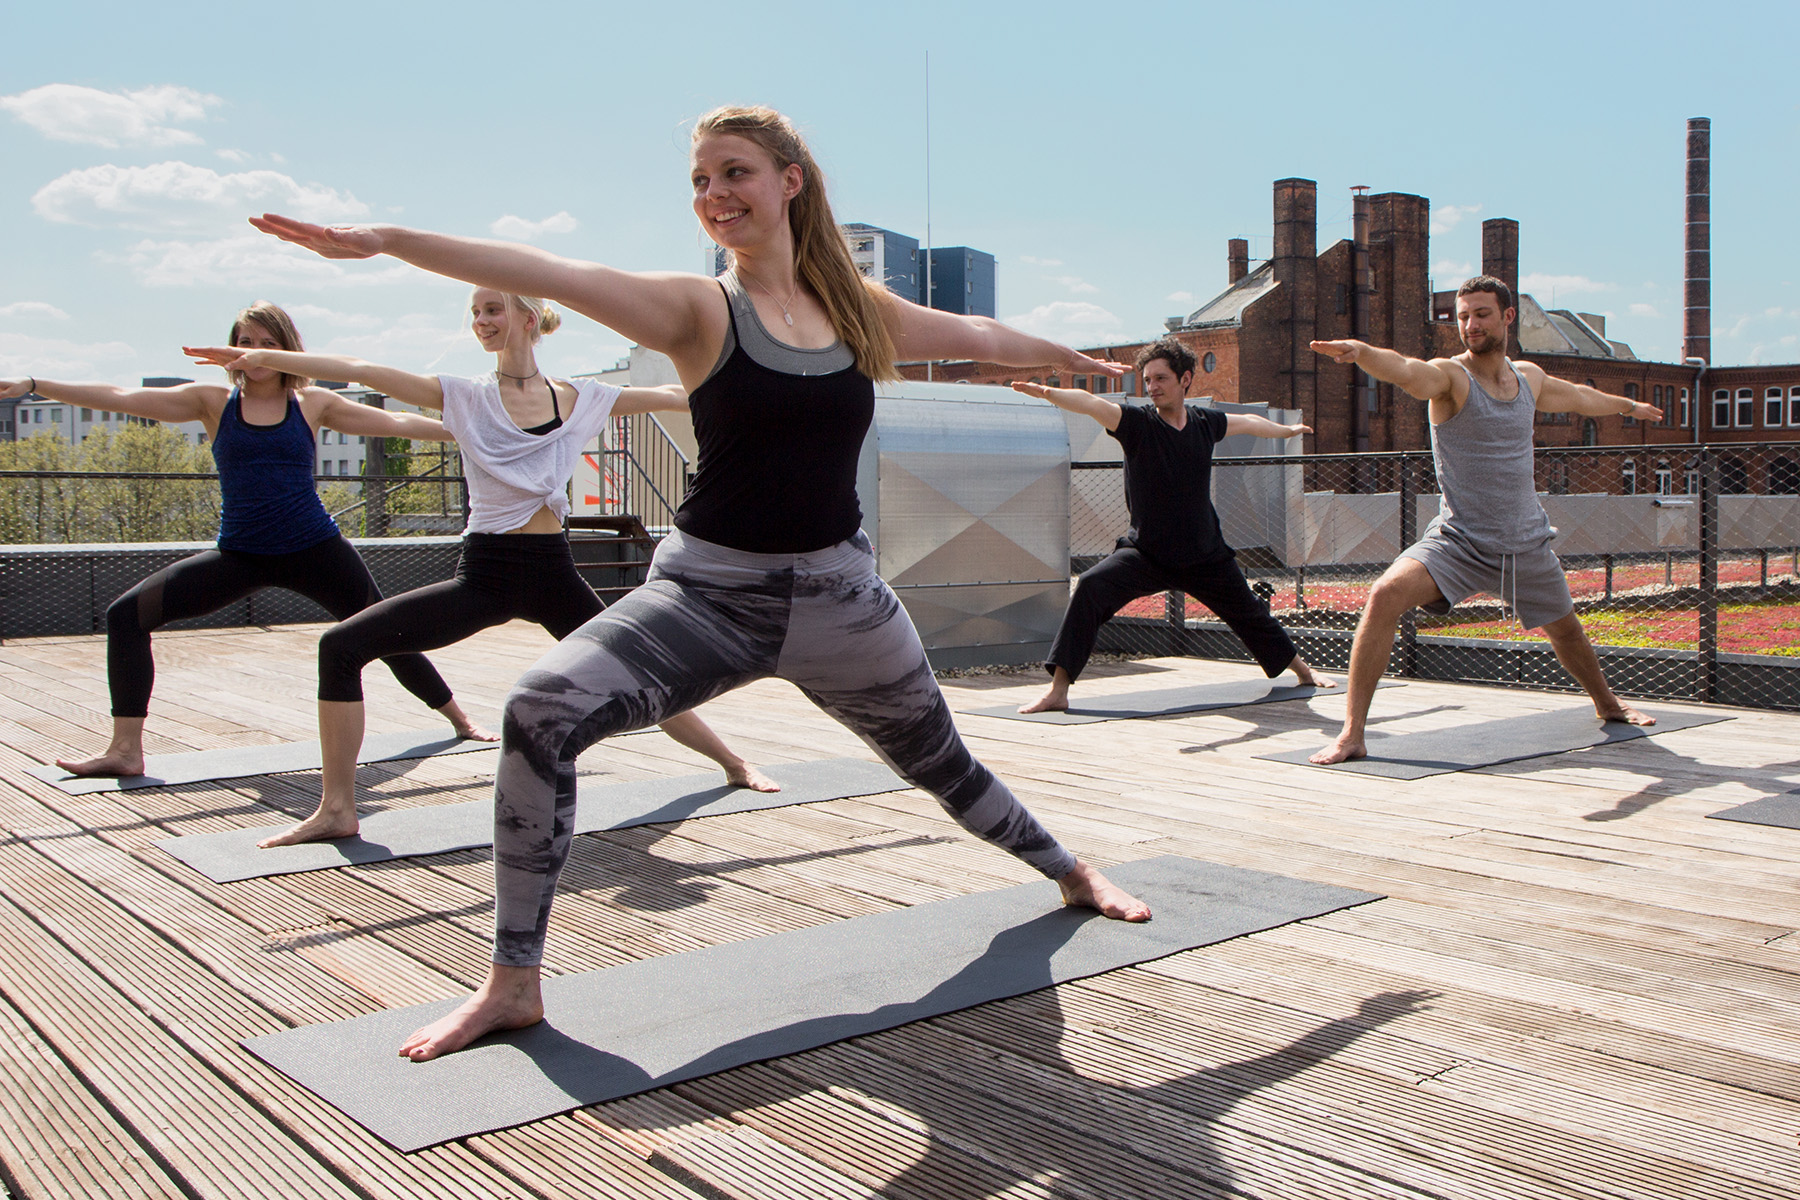 Yoga Dachterrasse Berlin Hip Hop Yoga Open Level Bei Natalia Zieleniecki Motion S